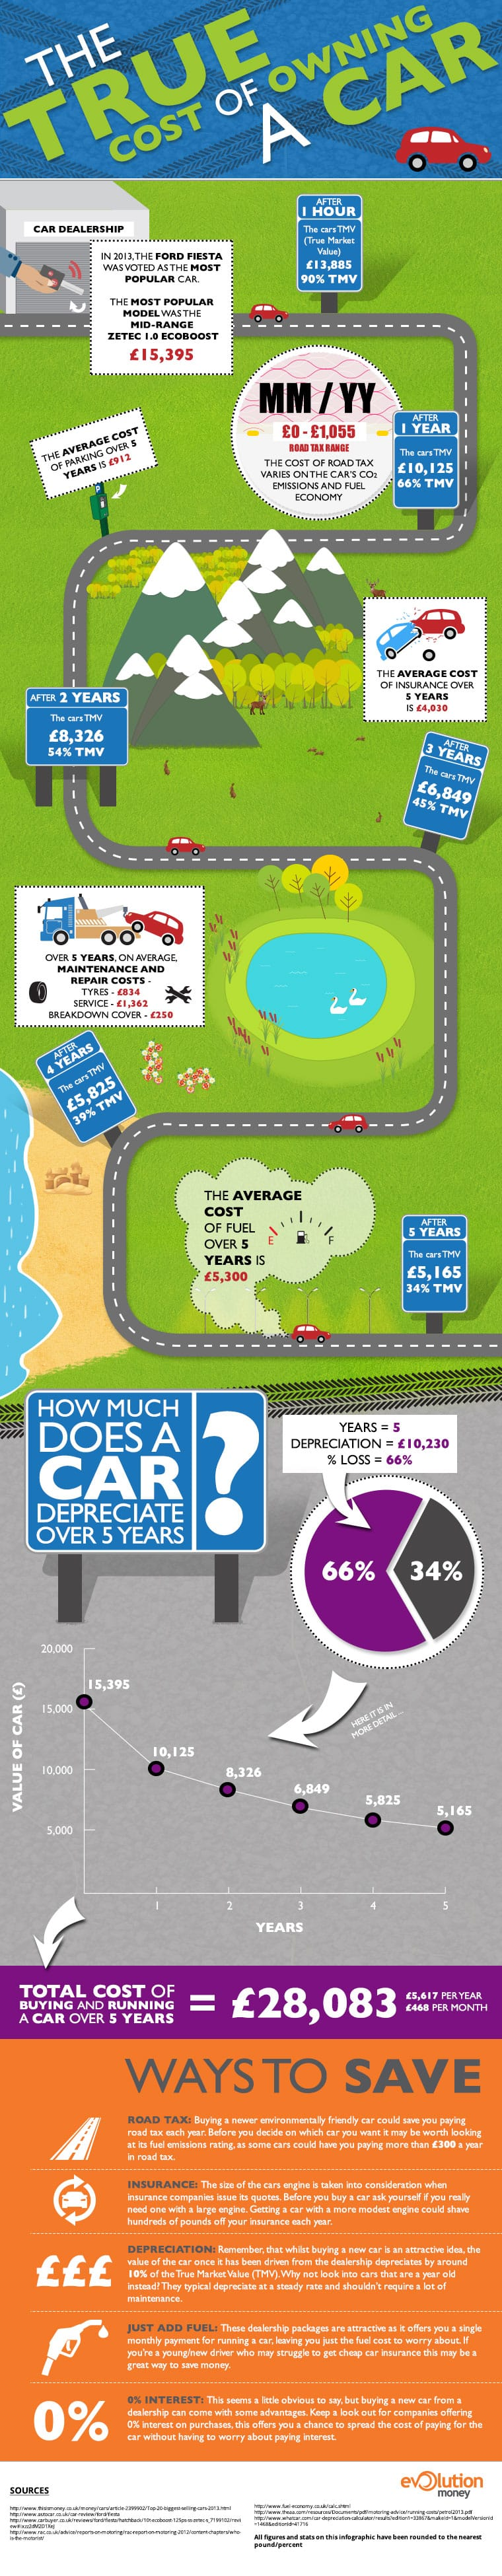 true cost of owning a car infographic